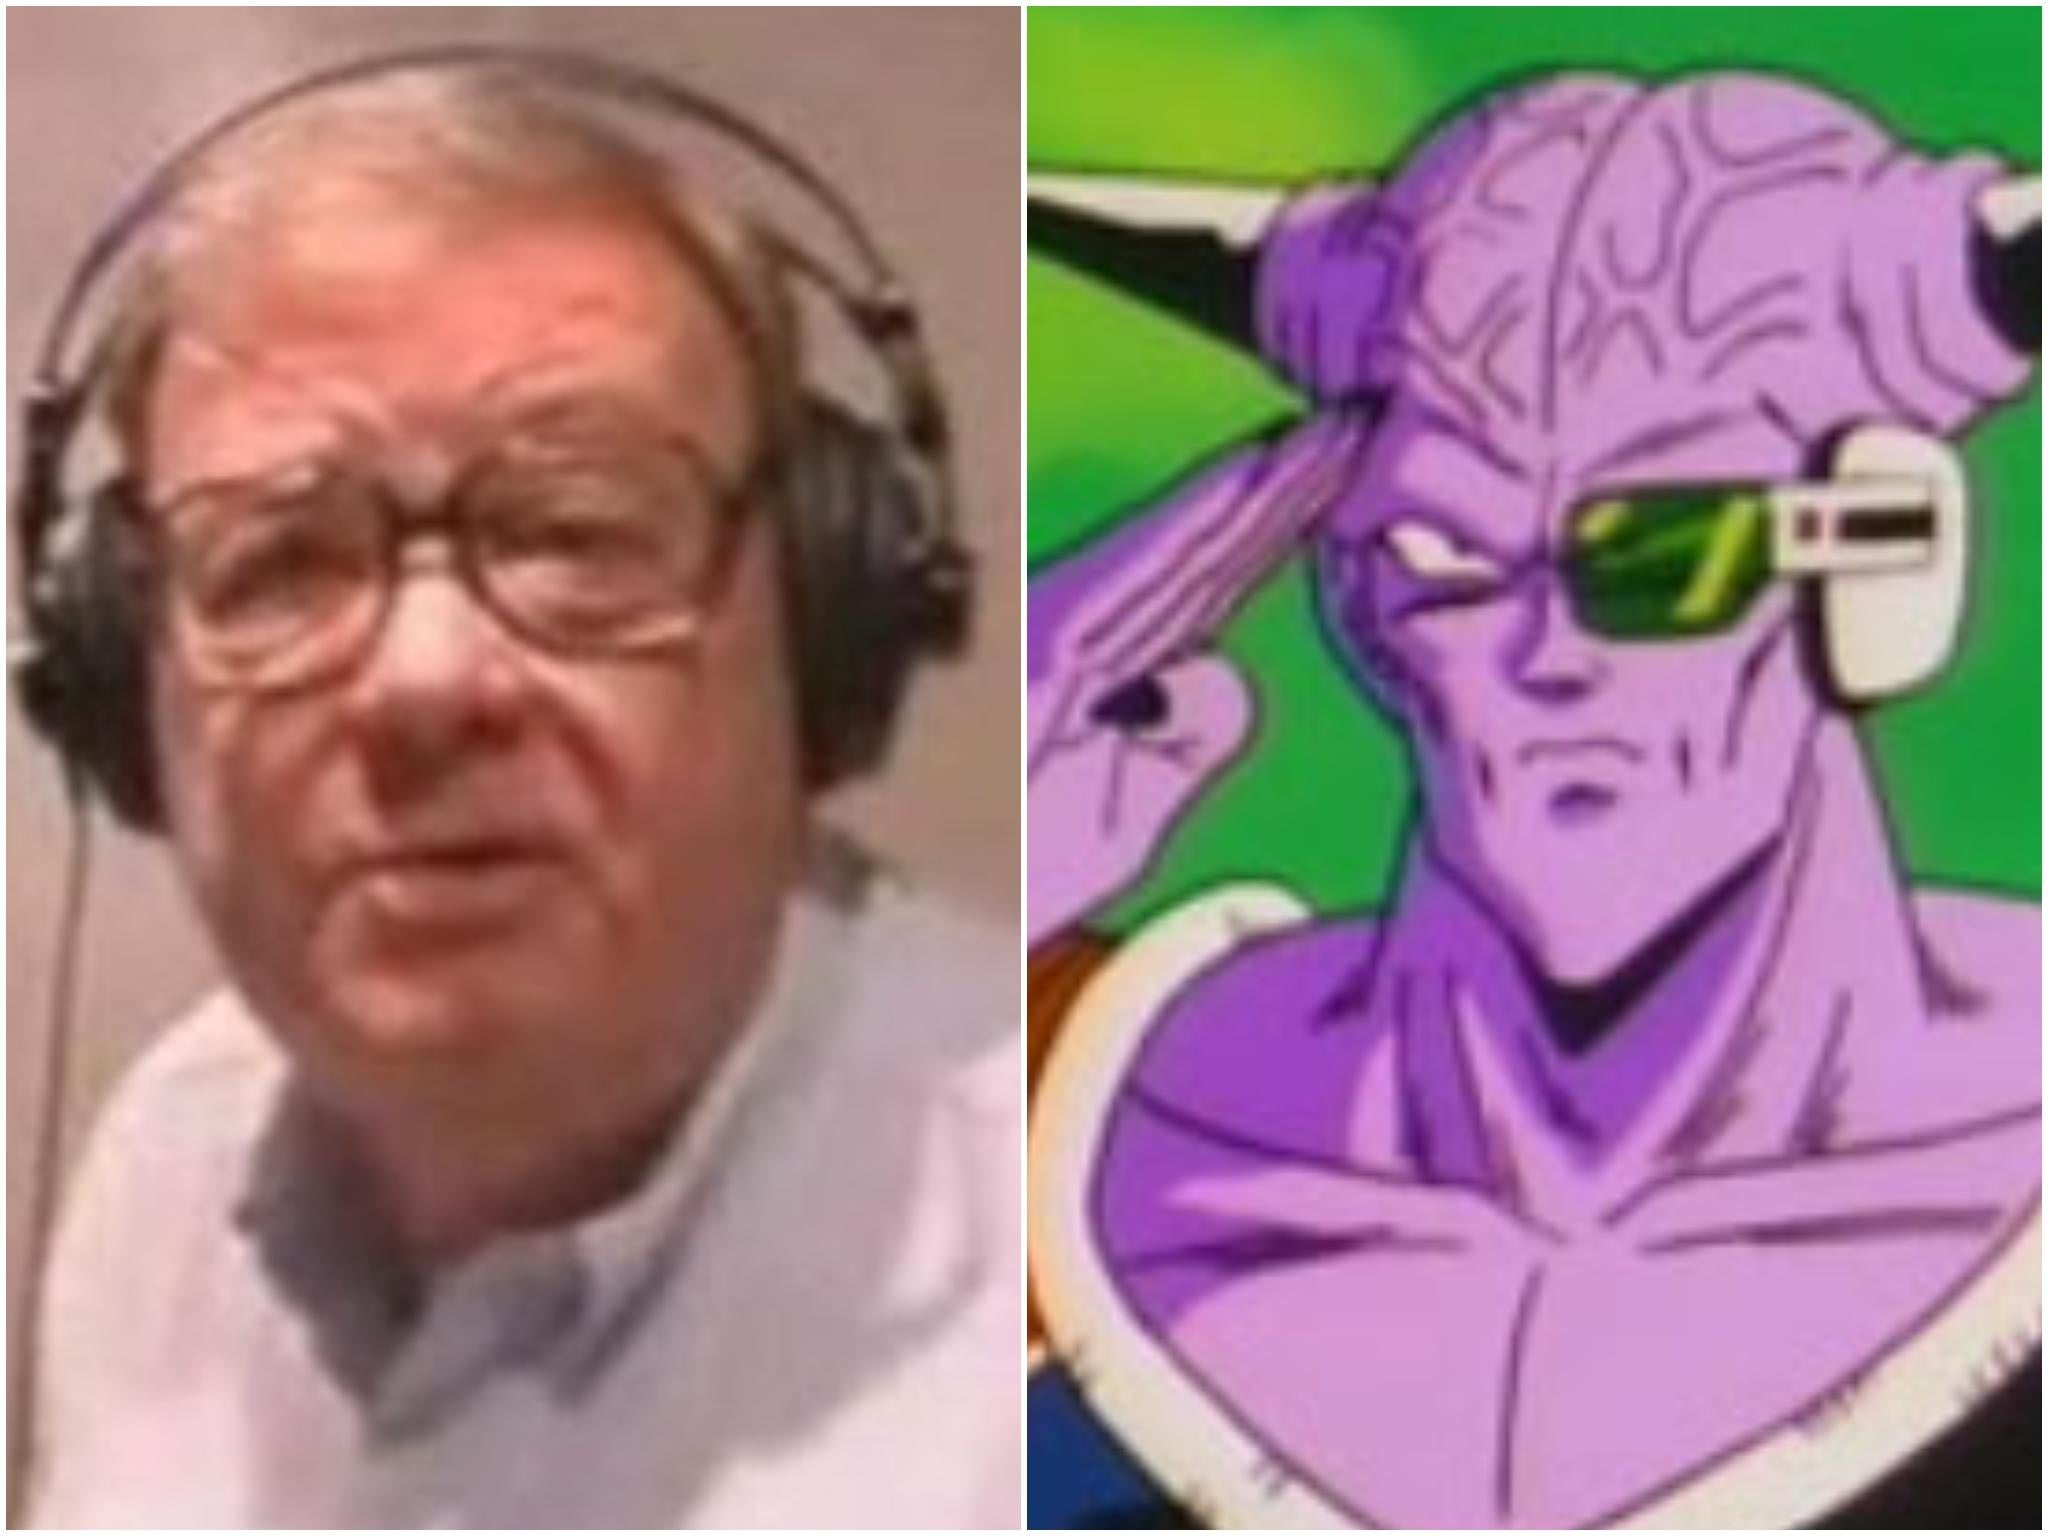 Brice Armstrong Death Dragon Ball Z S Ginyu Voice Actor And Anime Legend Dies Aged 84 The Independent The Independent